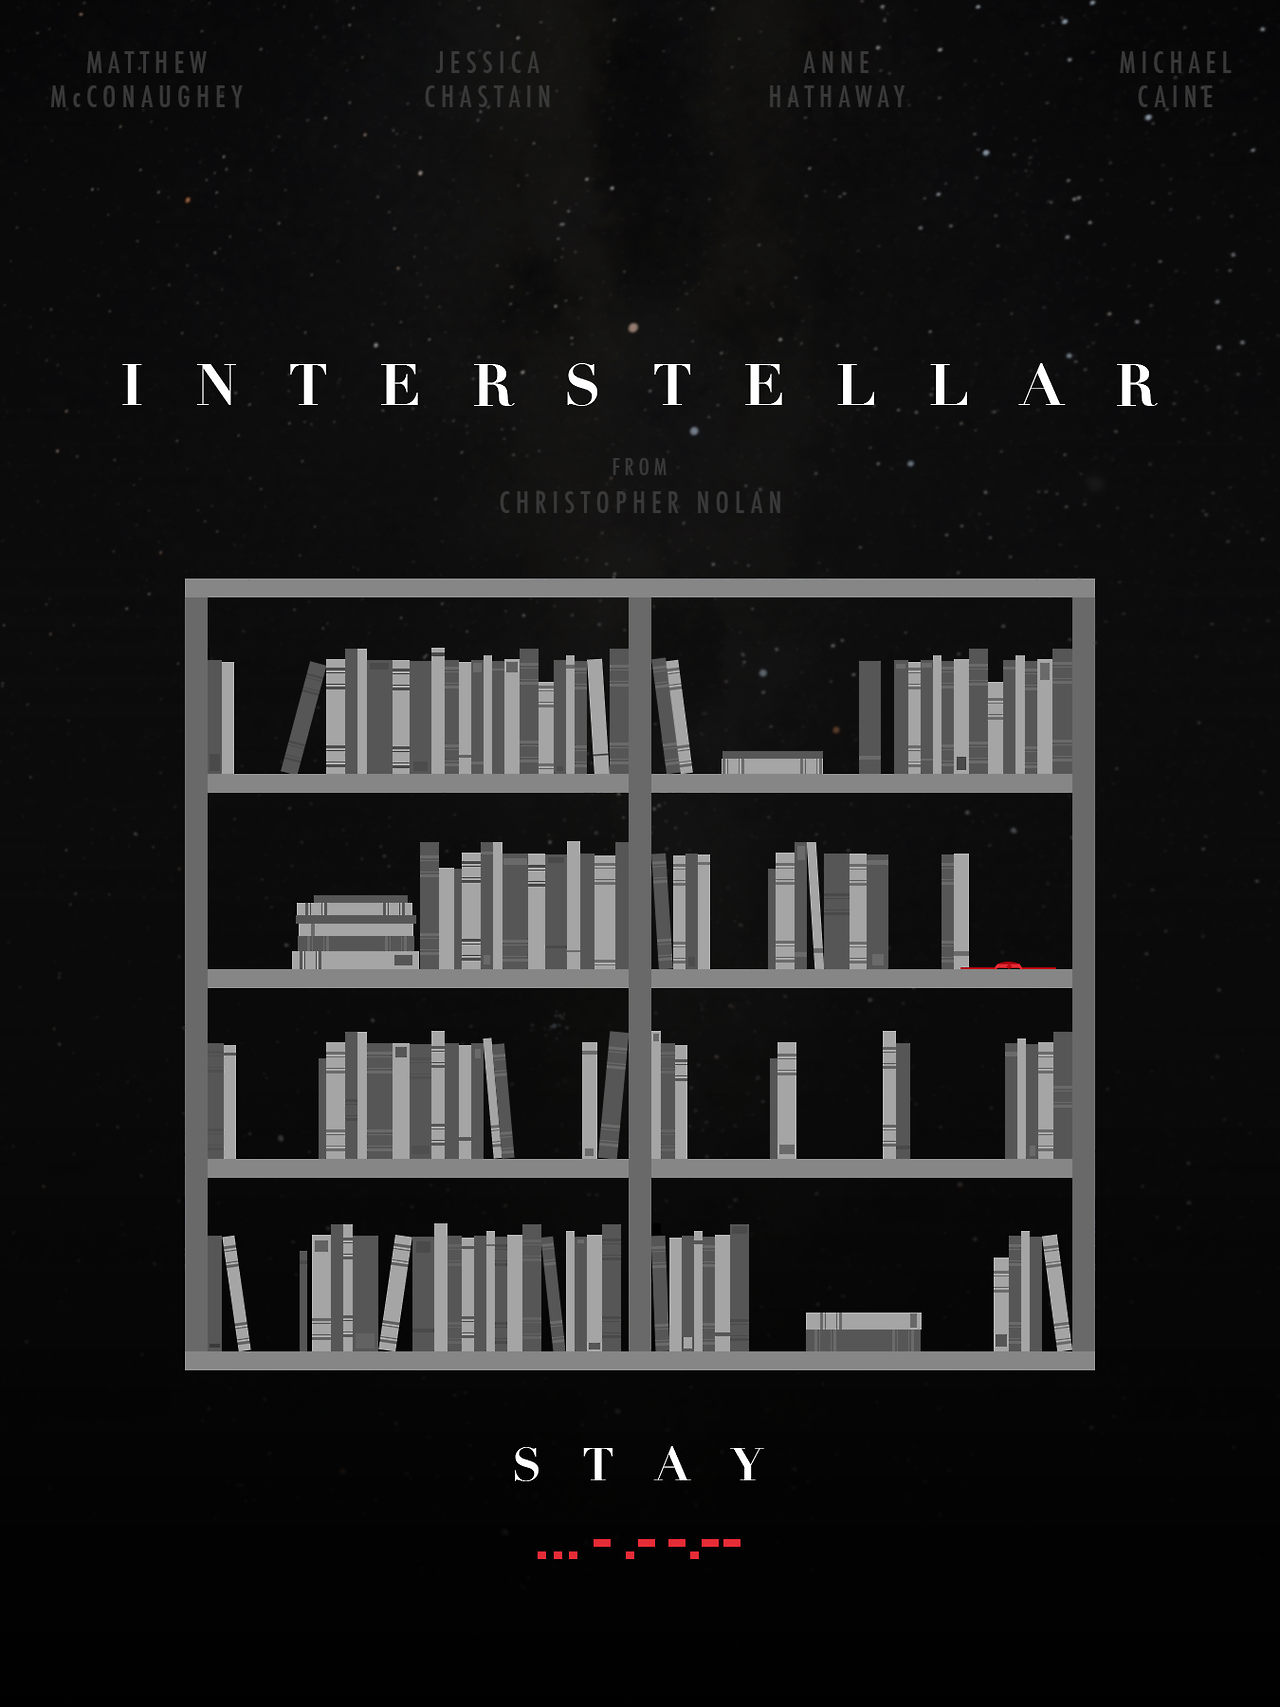 Siempre Piden Un Titulo Photo Things I Want And Maybe Give - Beautifully designed interstellar posters james fletcher